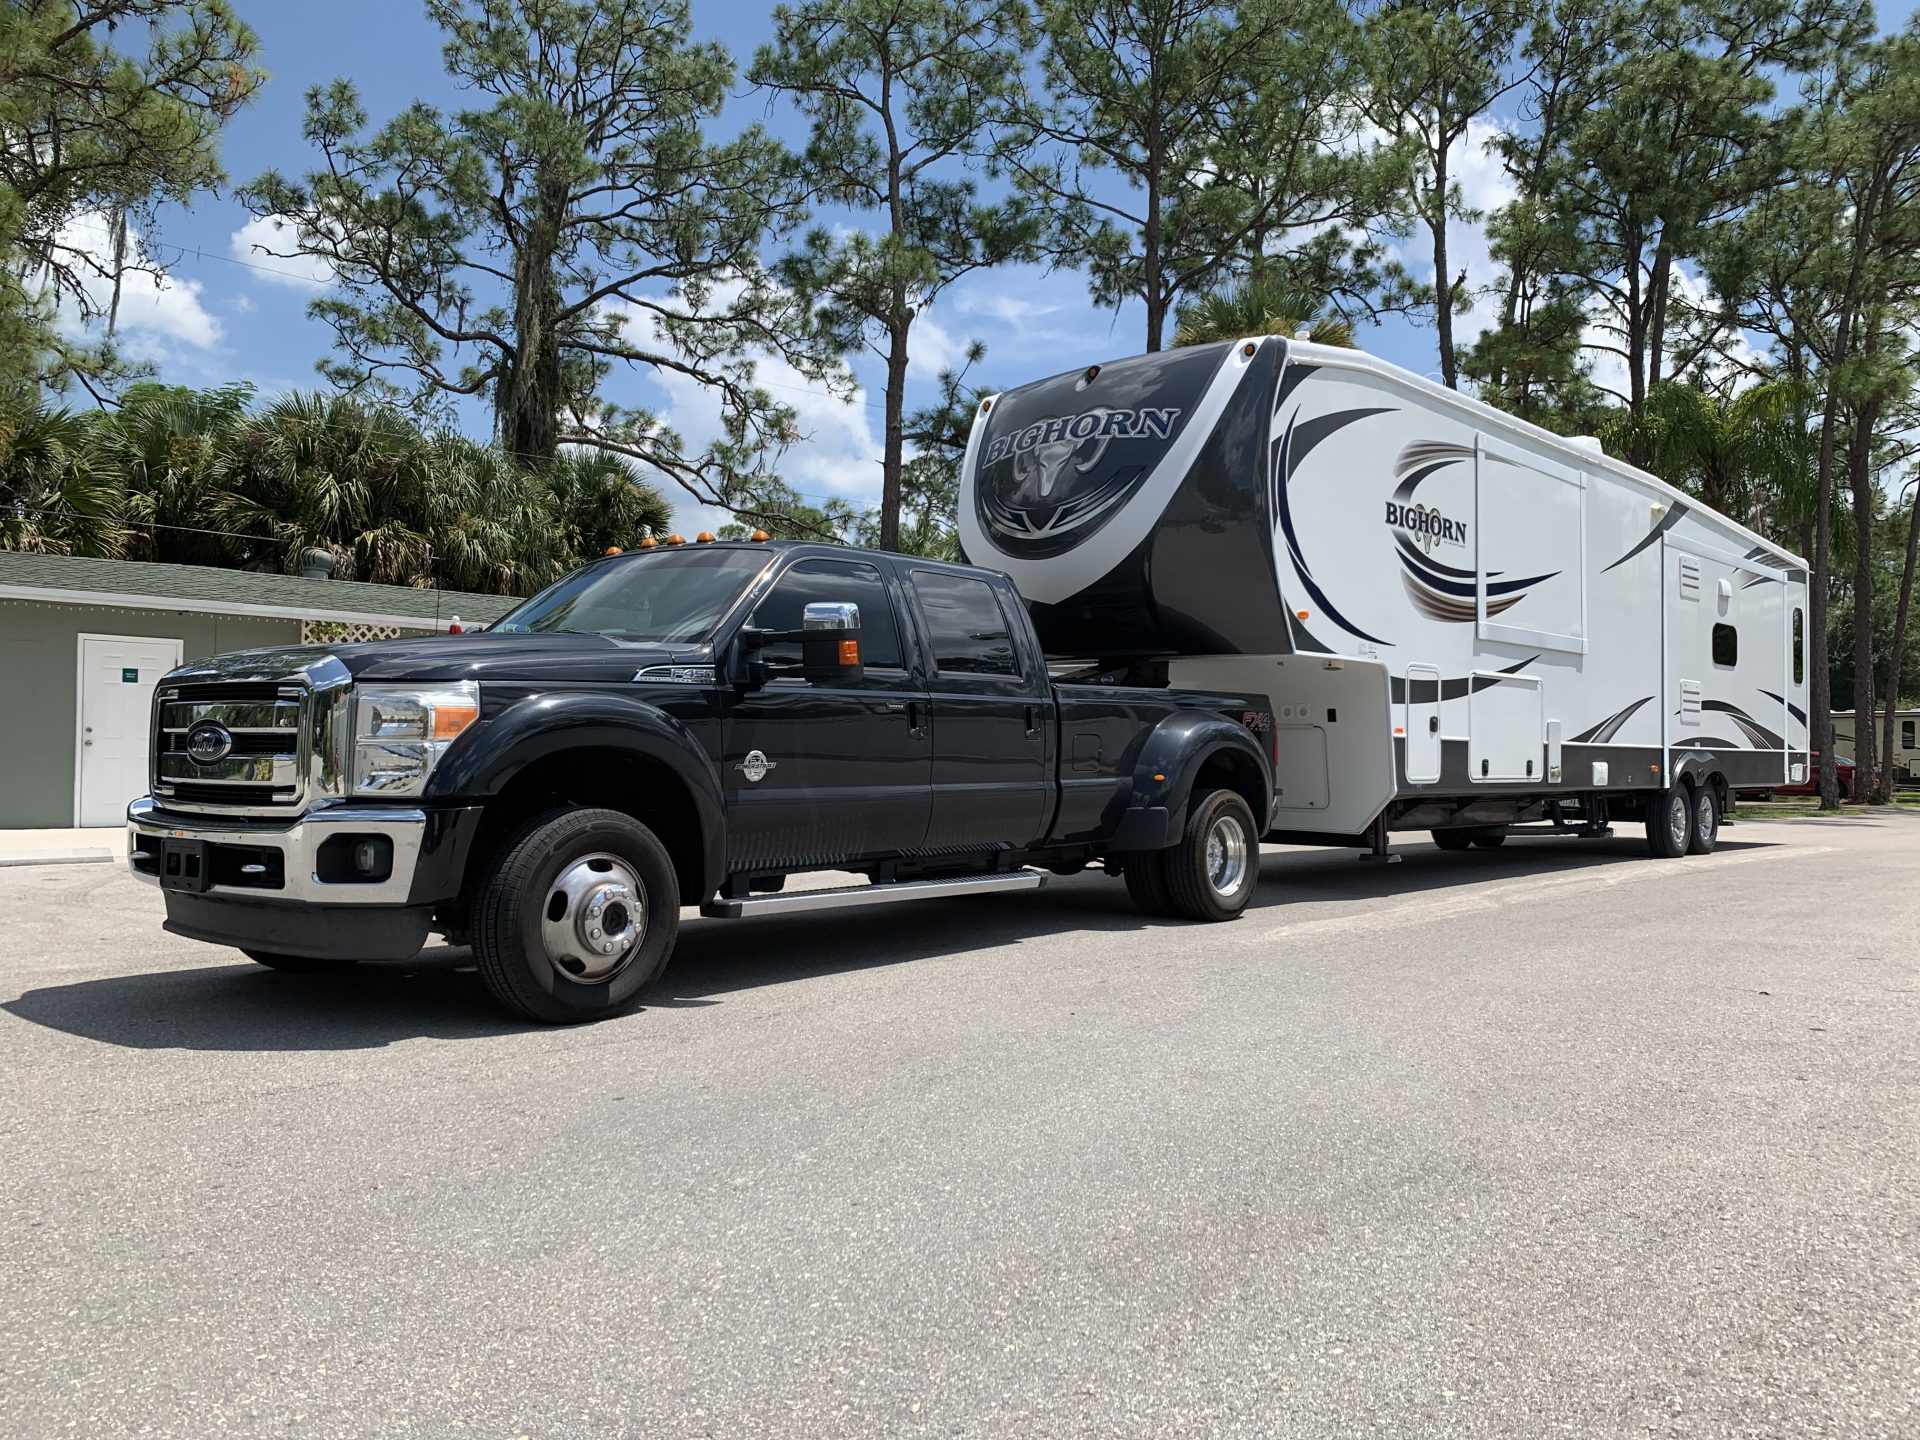 F450 Super Duty pulling a 2015 Heartland Bighorn 3875FB